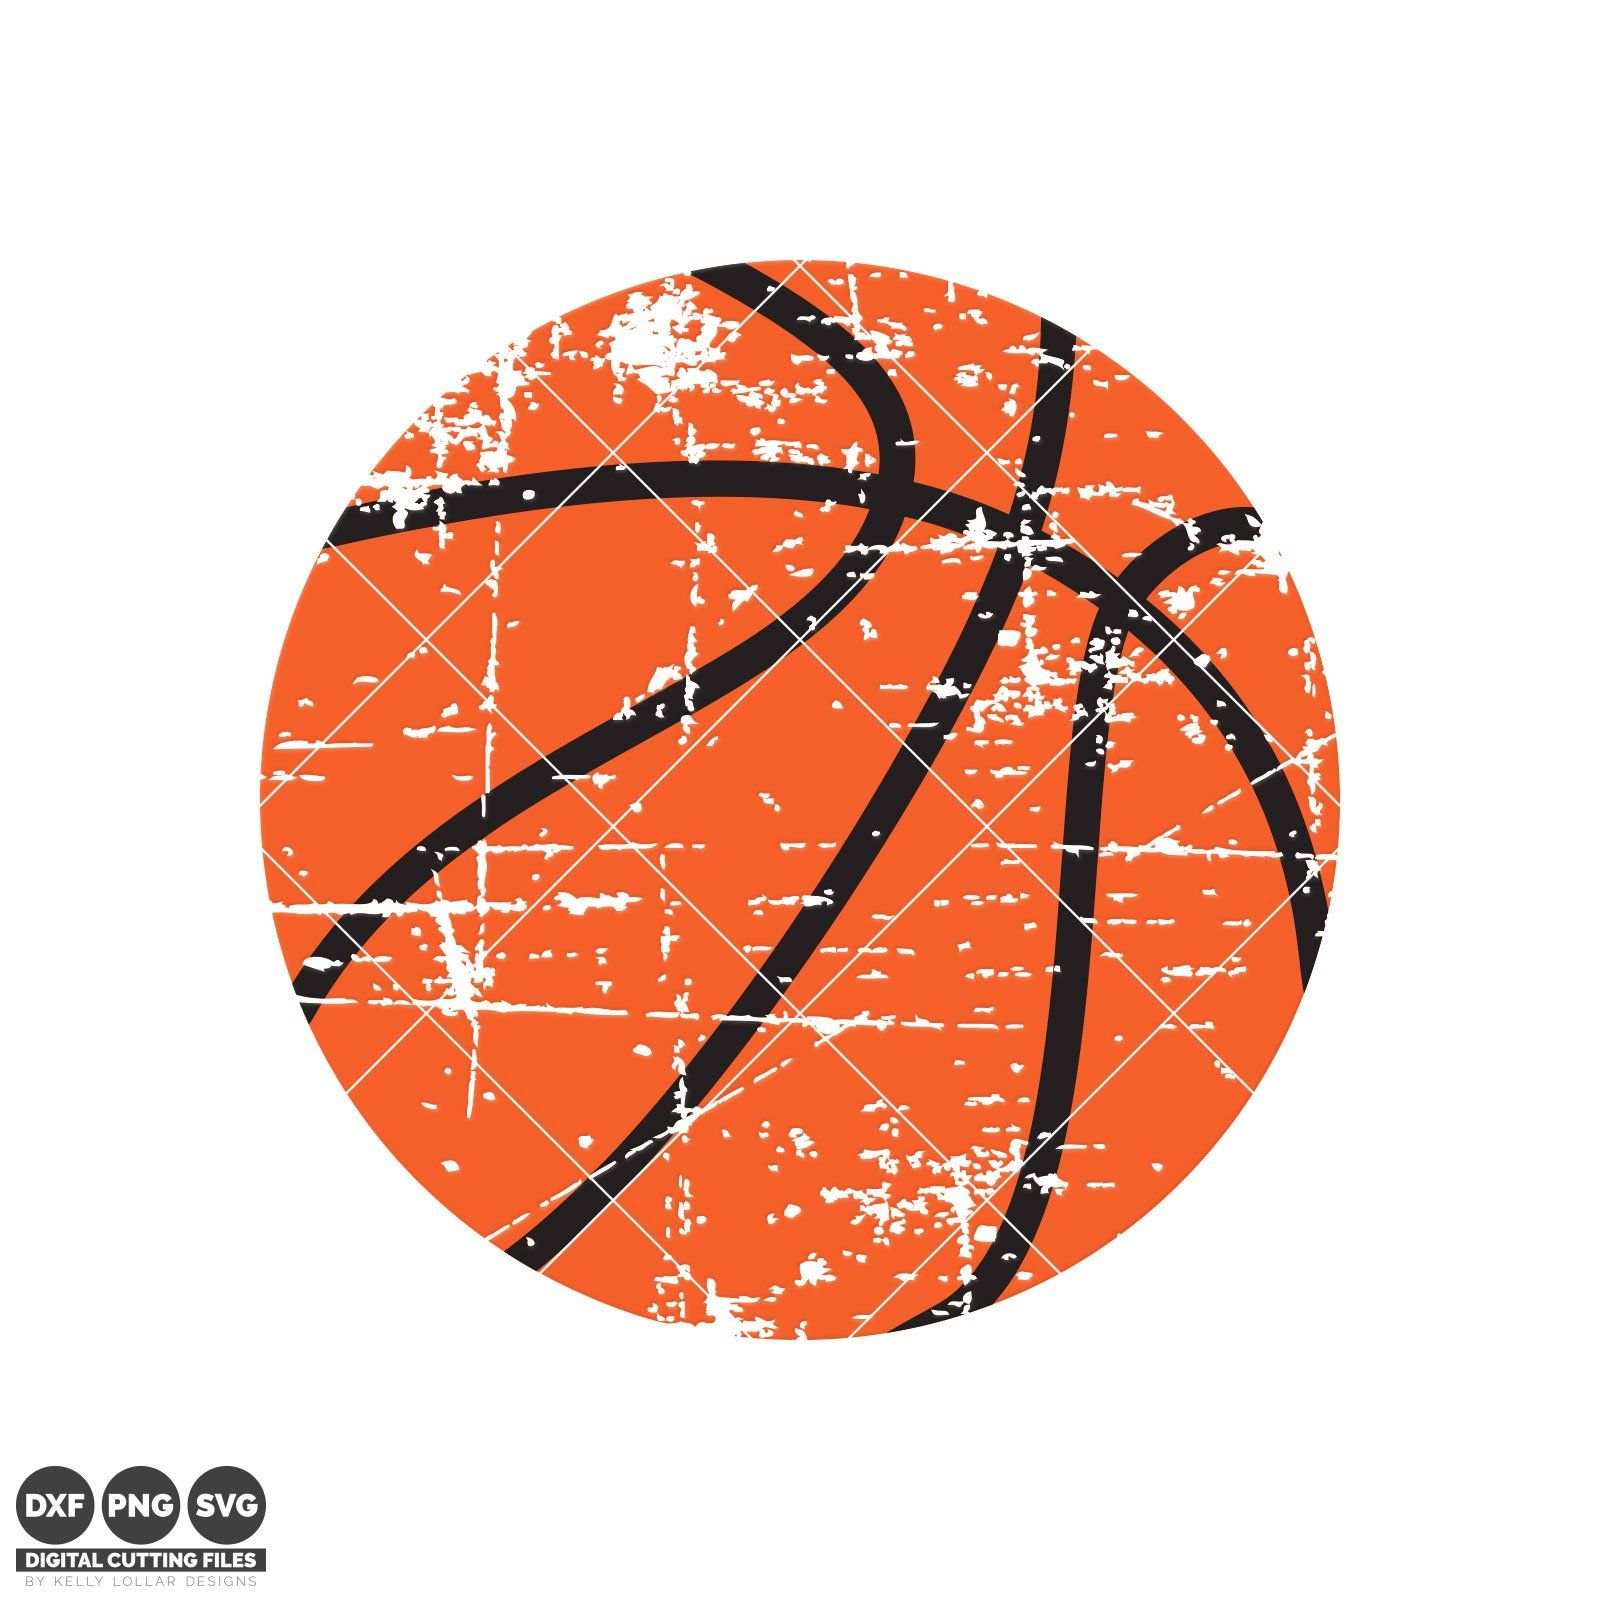 Distressed Basketball svg file perfect for a retro vibe t.